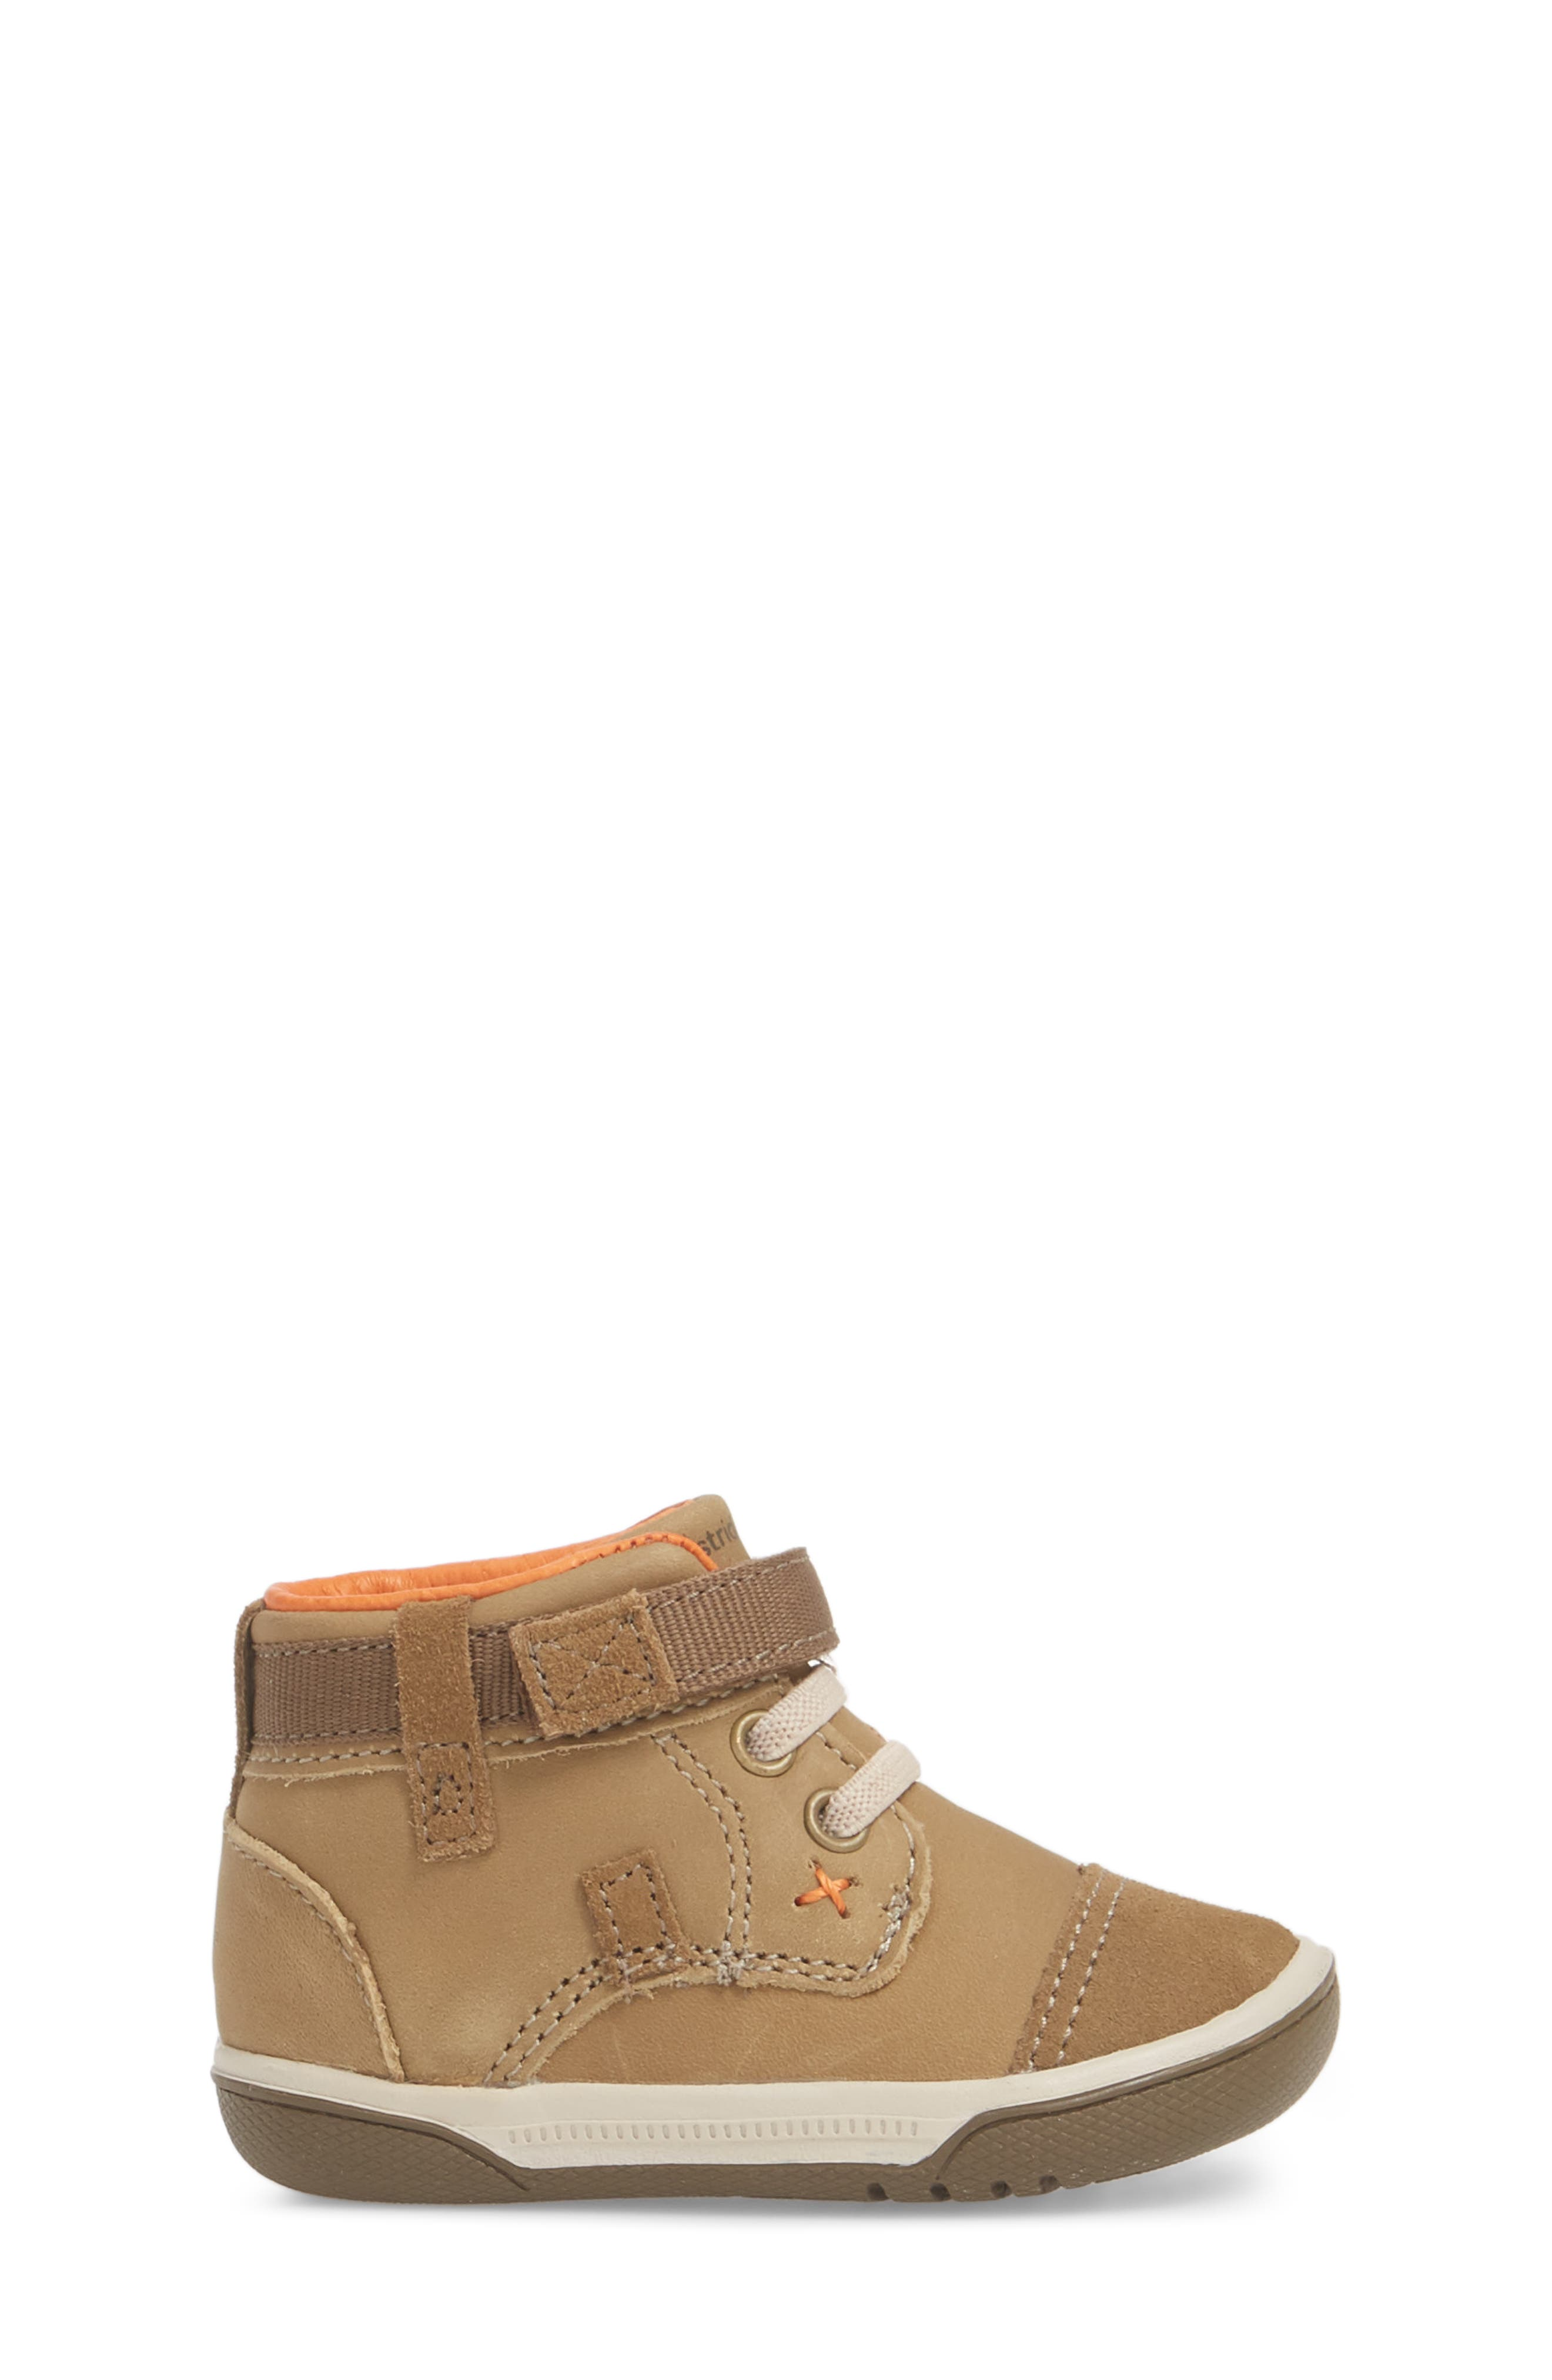 Gus Crib Bootie,                             Alternate thumbnail 3, color,                             BROWN